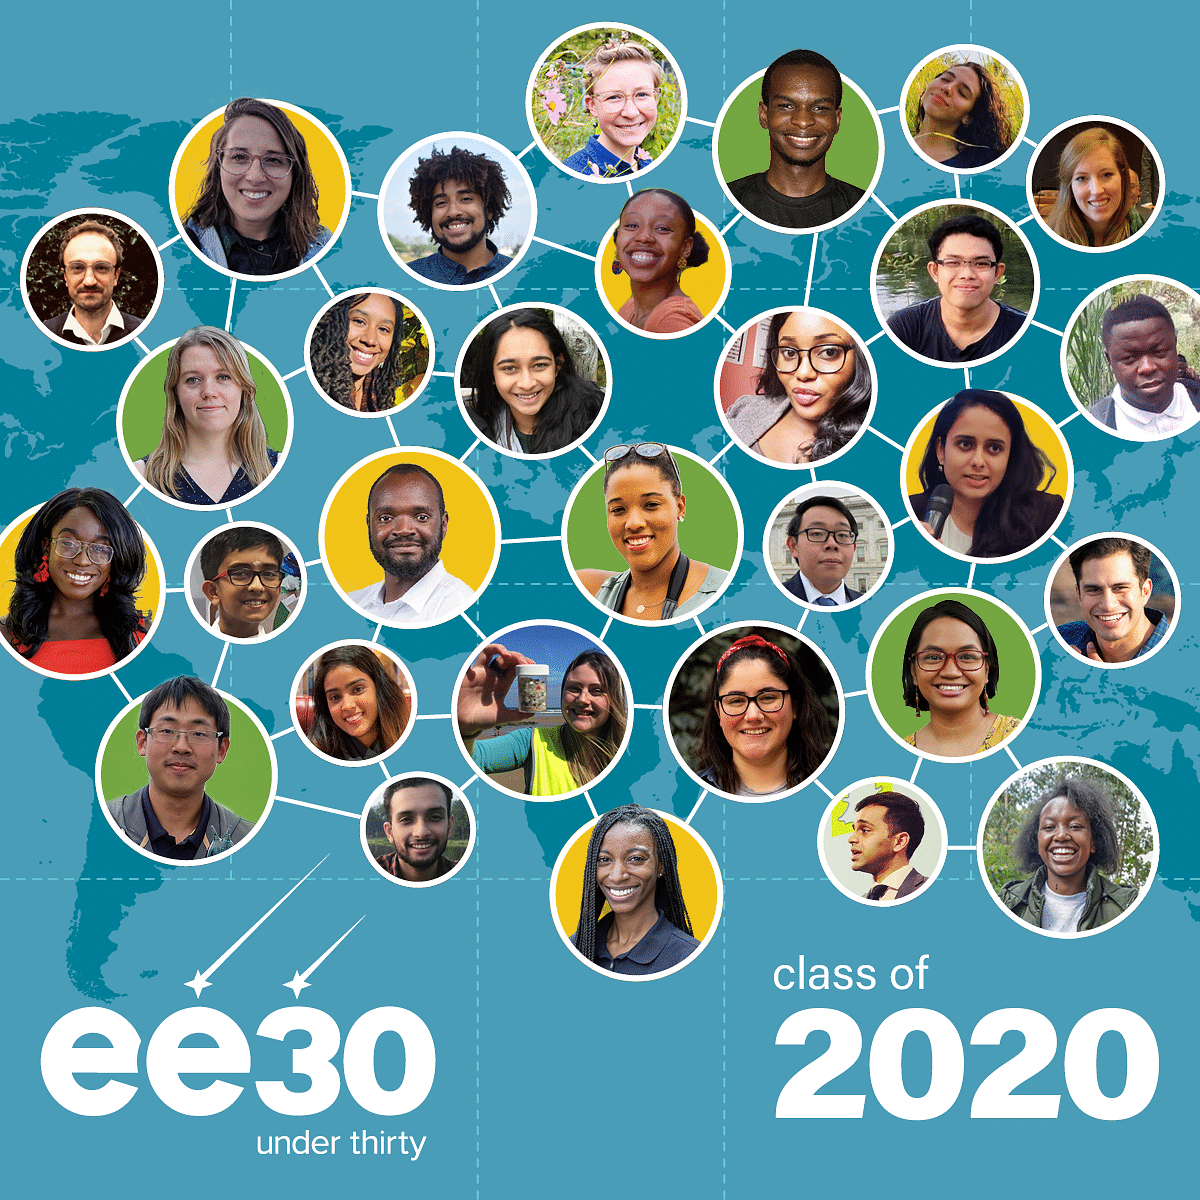 EE 30 Under 30 Class of 2020